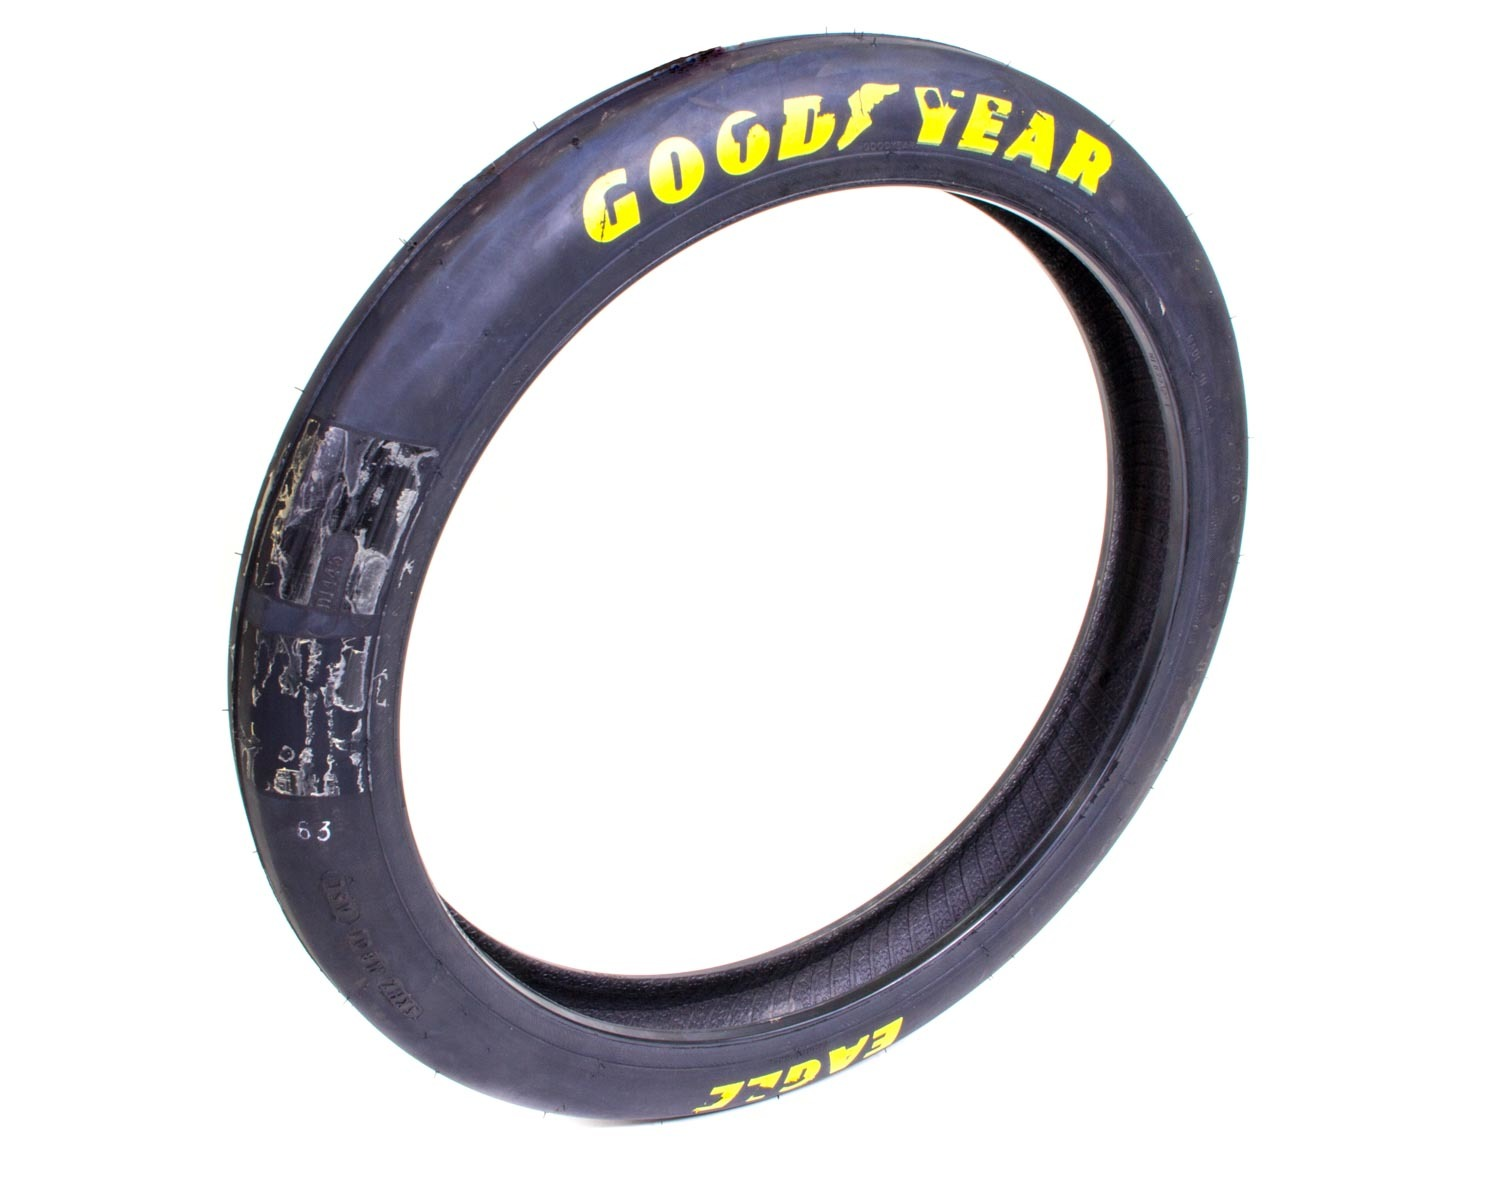 Goodyear D1445 Tire, Drag Front, Front Runner, 22.0 x 2.5-17, Bias Ply, Hard Compound, Extended Tread Life, Yellow Letter Sidewall, Each